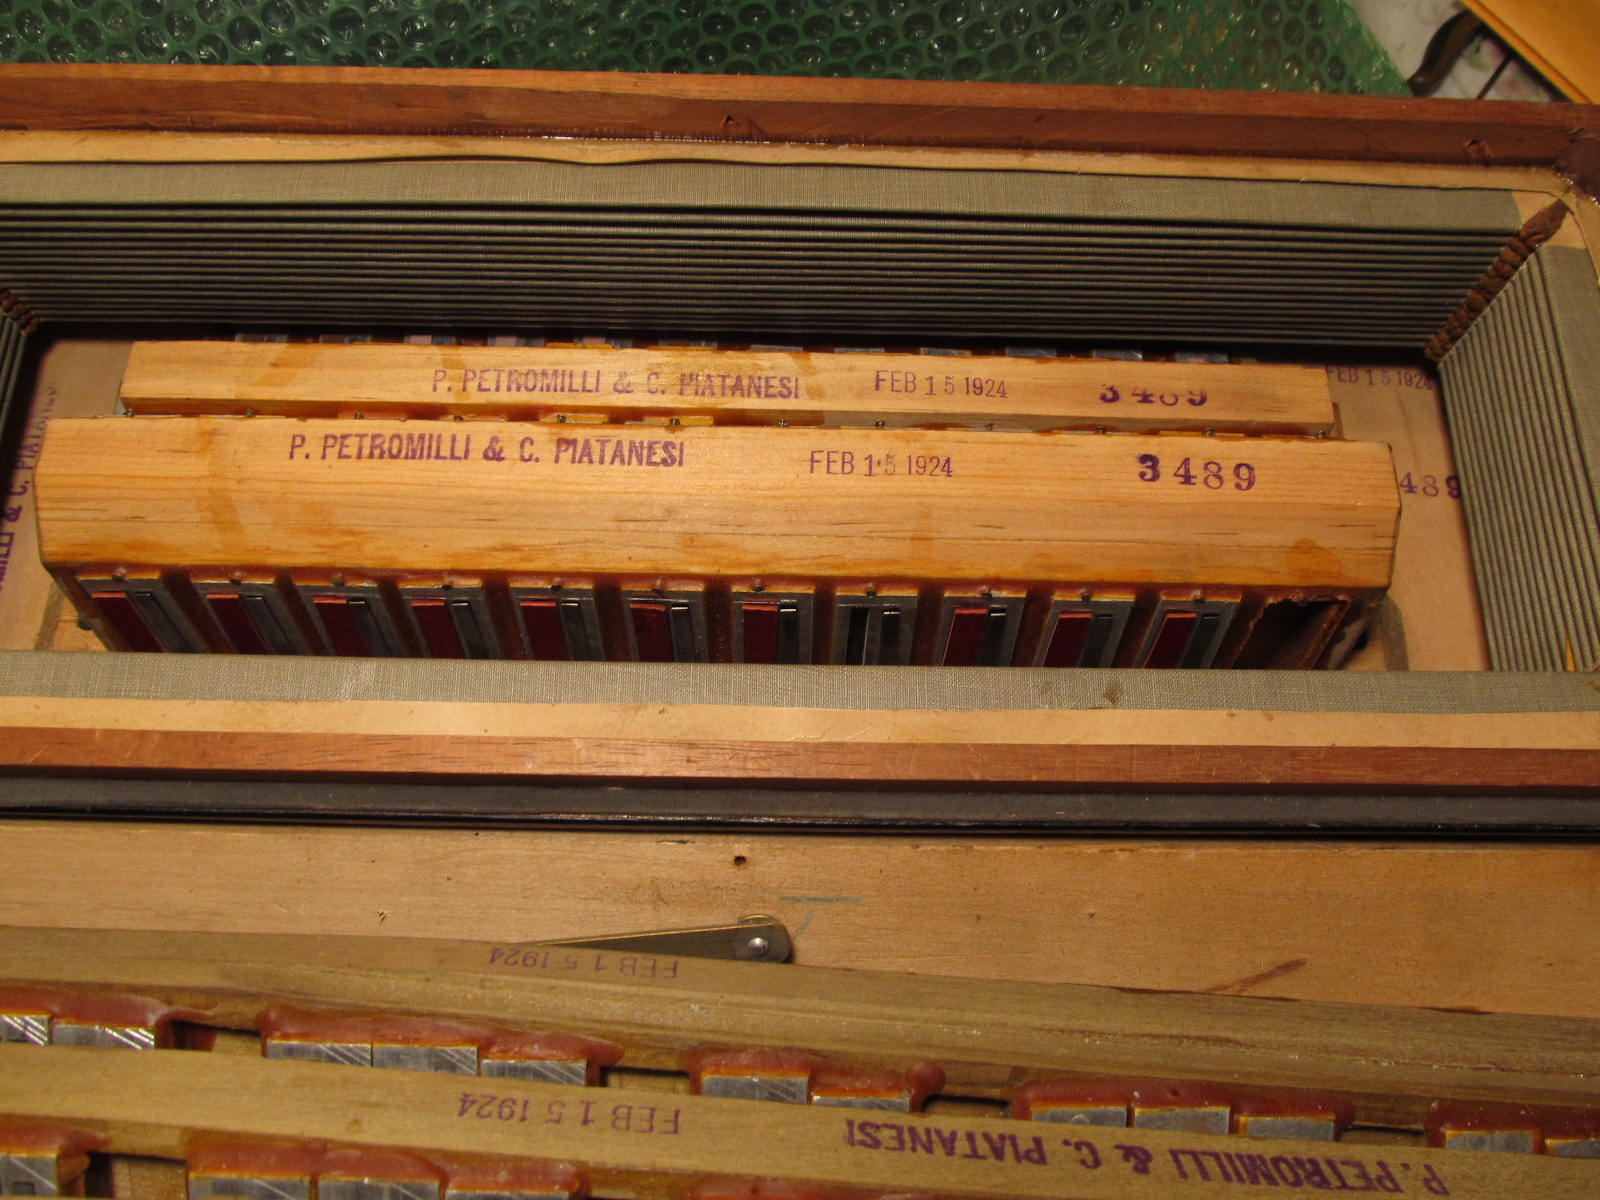 Inside the accordion we see the dates stamped on the treble and bass blocks.